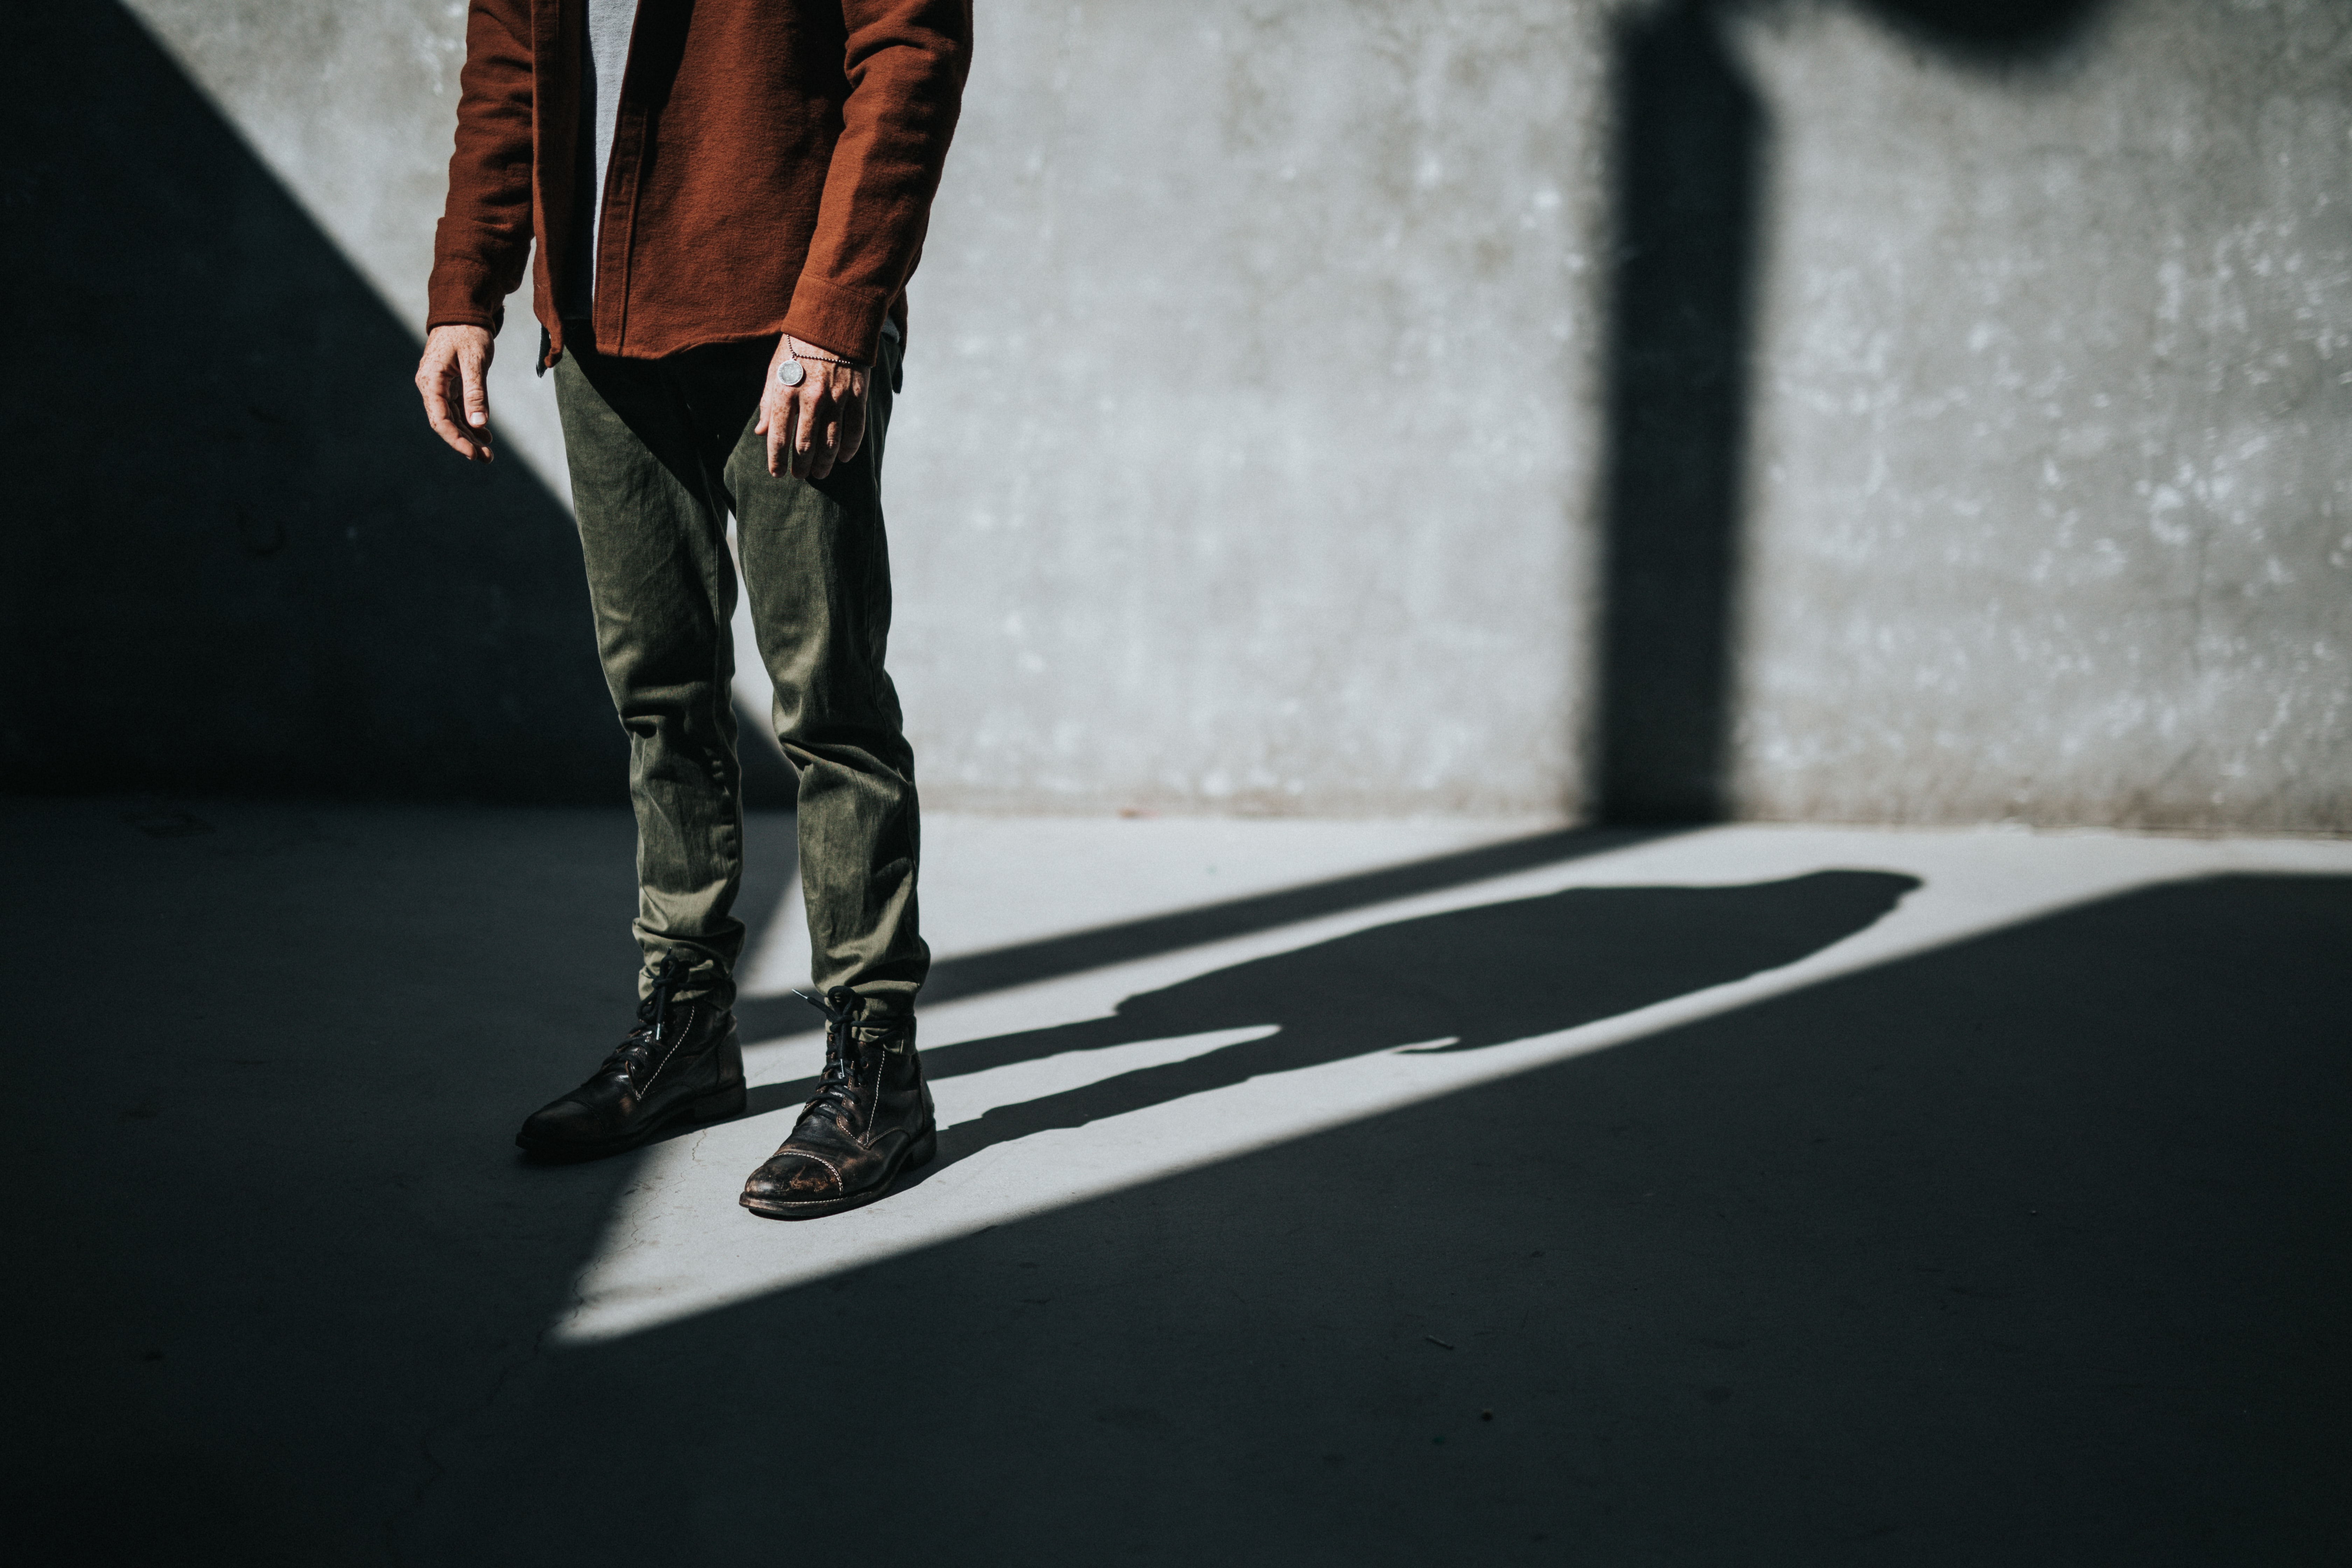 person standing near wall producing shadow